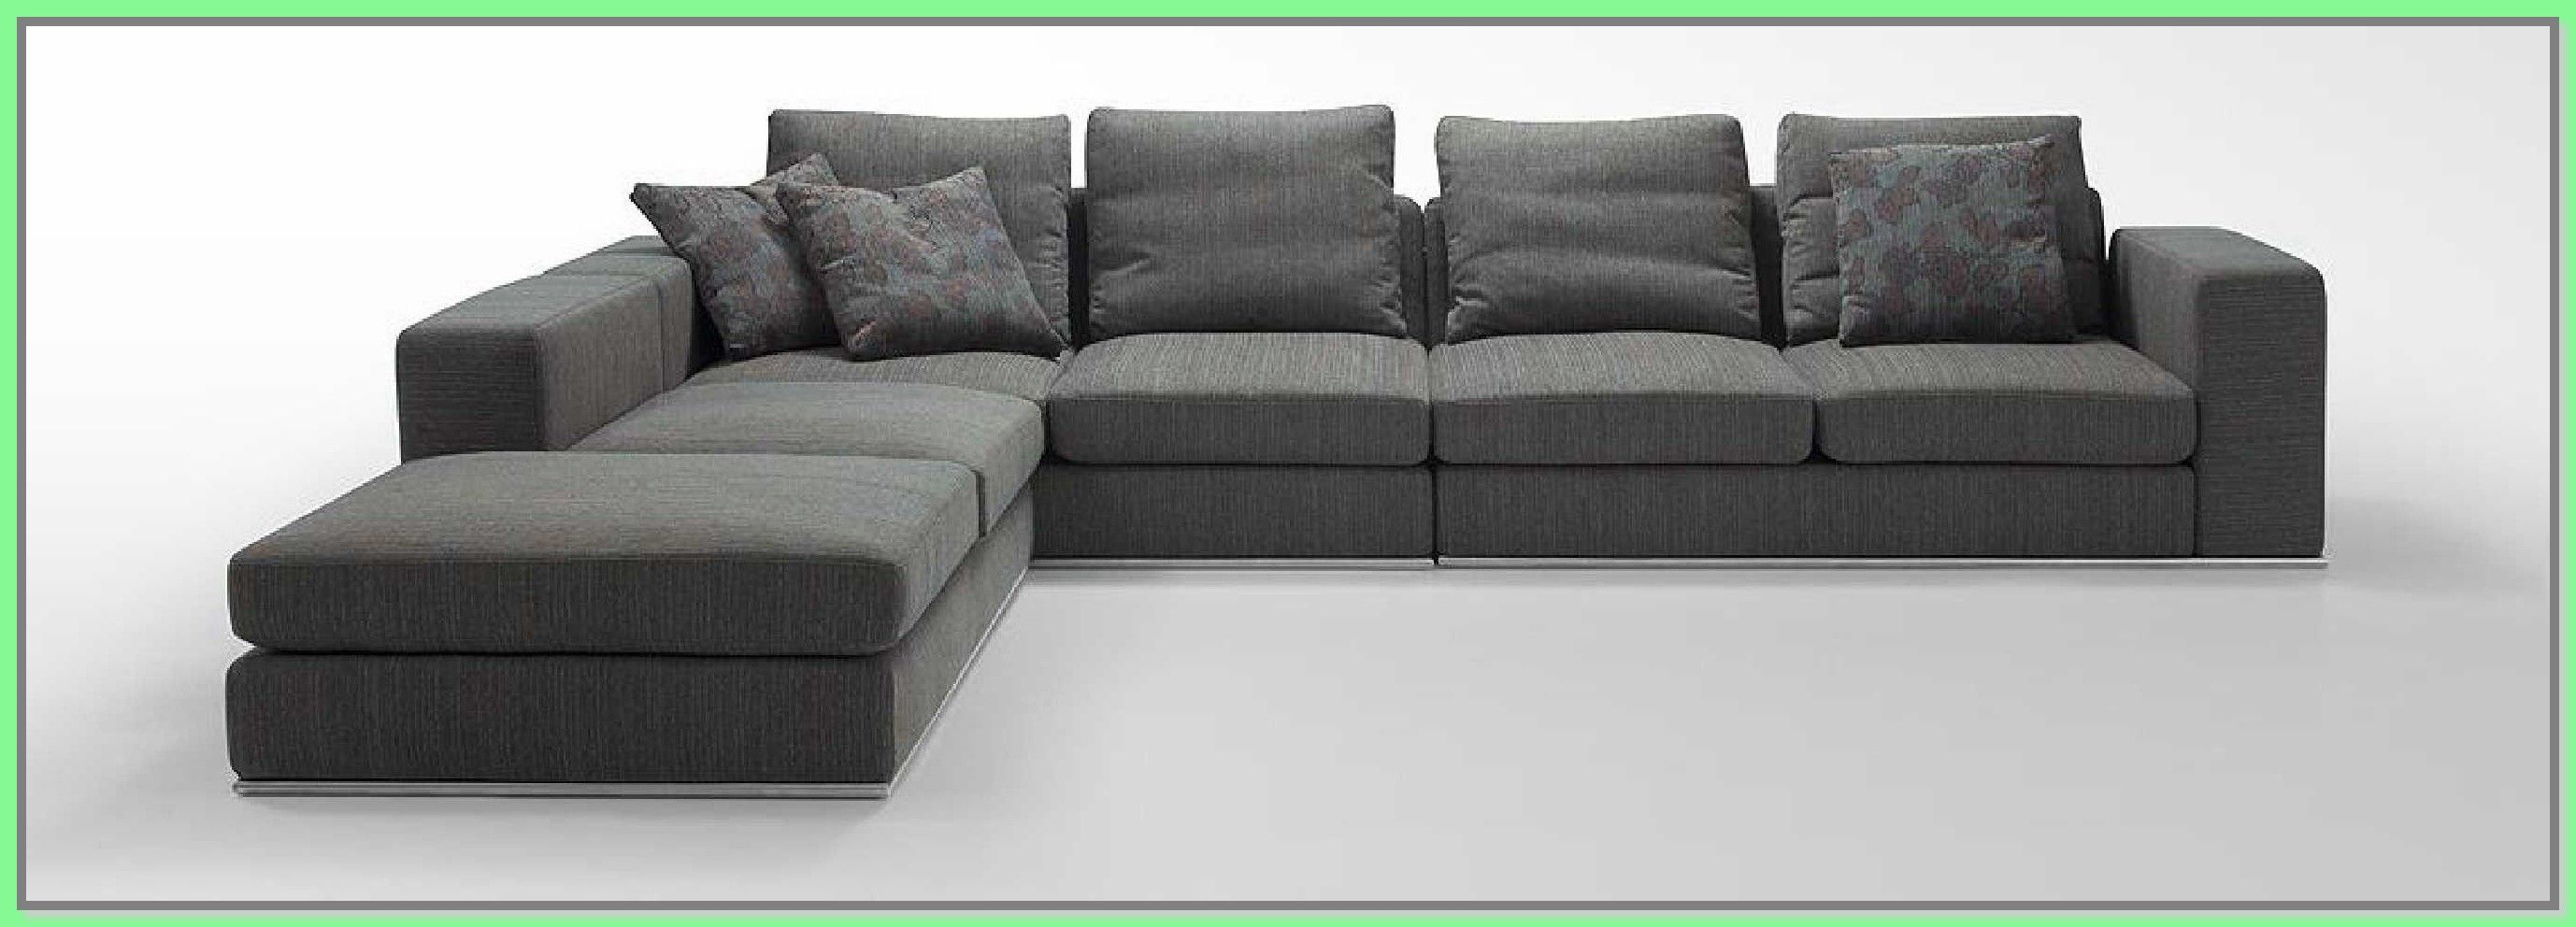 119 Reference Of Couch Comfy L Shaped In 2020 Grey Sectional Sofa L Shaped Sofa Bed Fabric Sectional Sofas